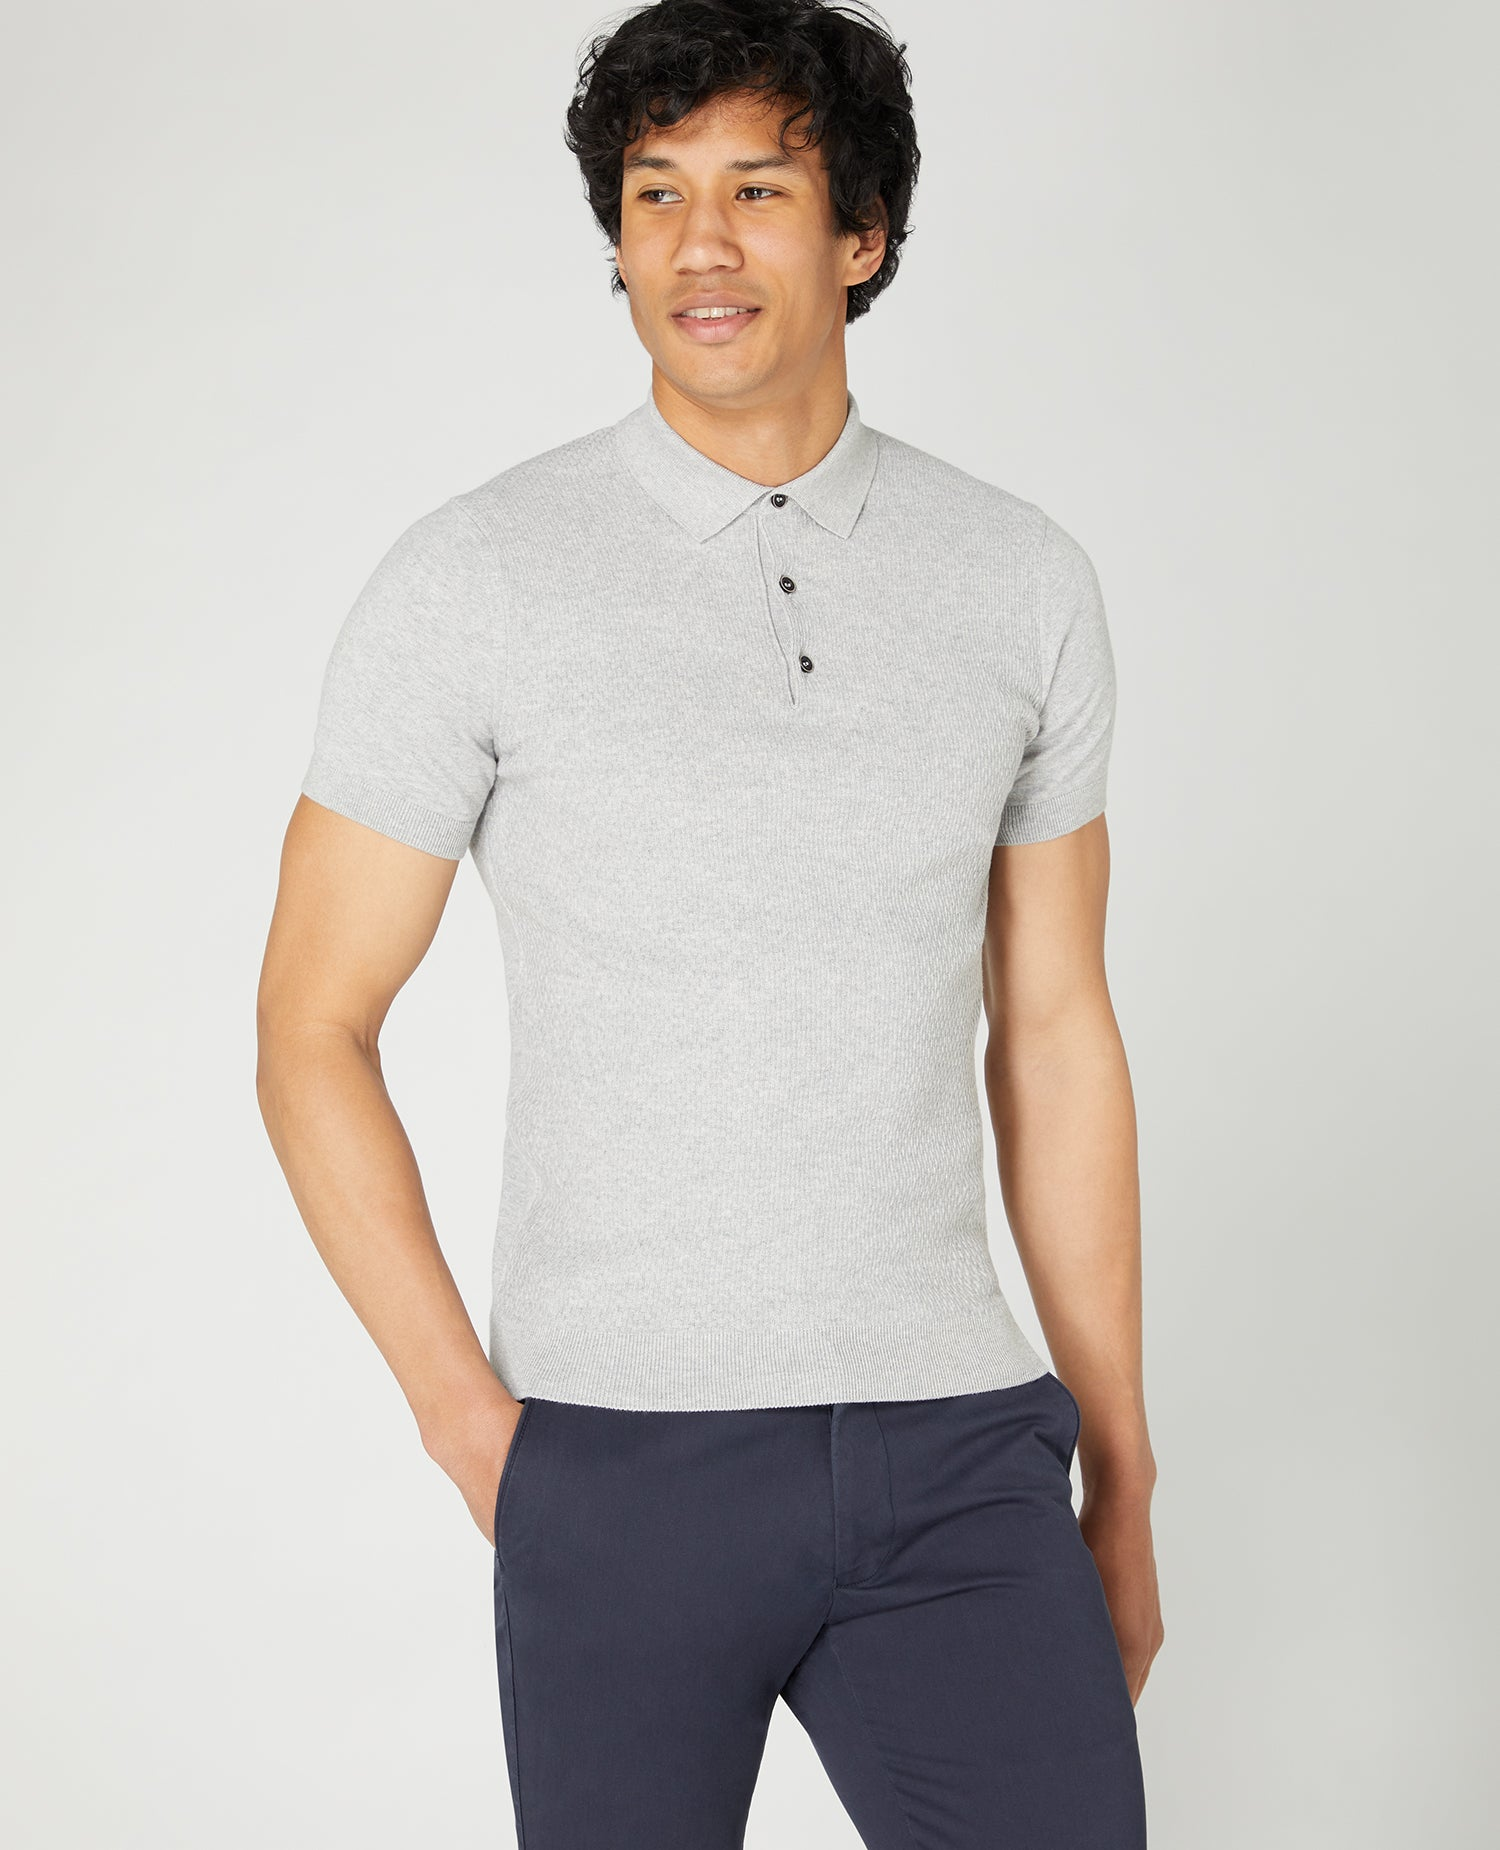 Slim Fit Knitted Cotton SS Polo Shirt Grey | Remus Uomo